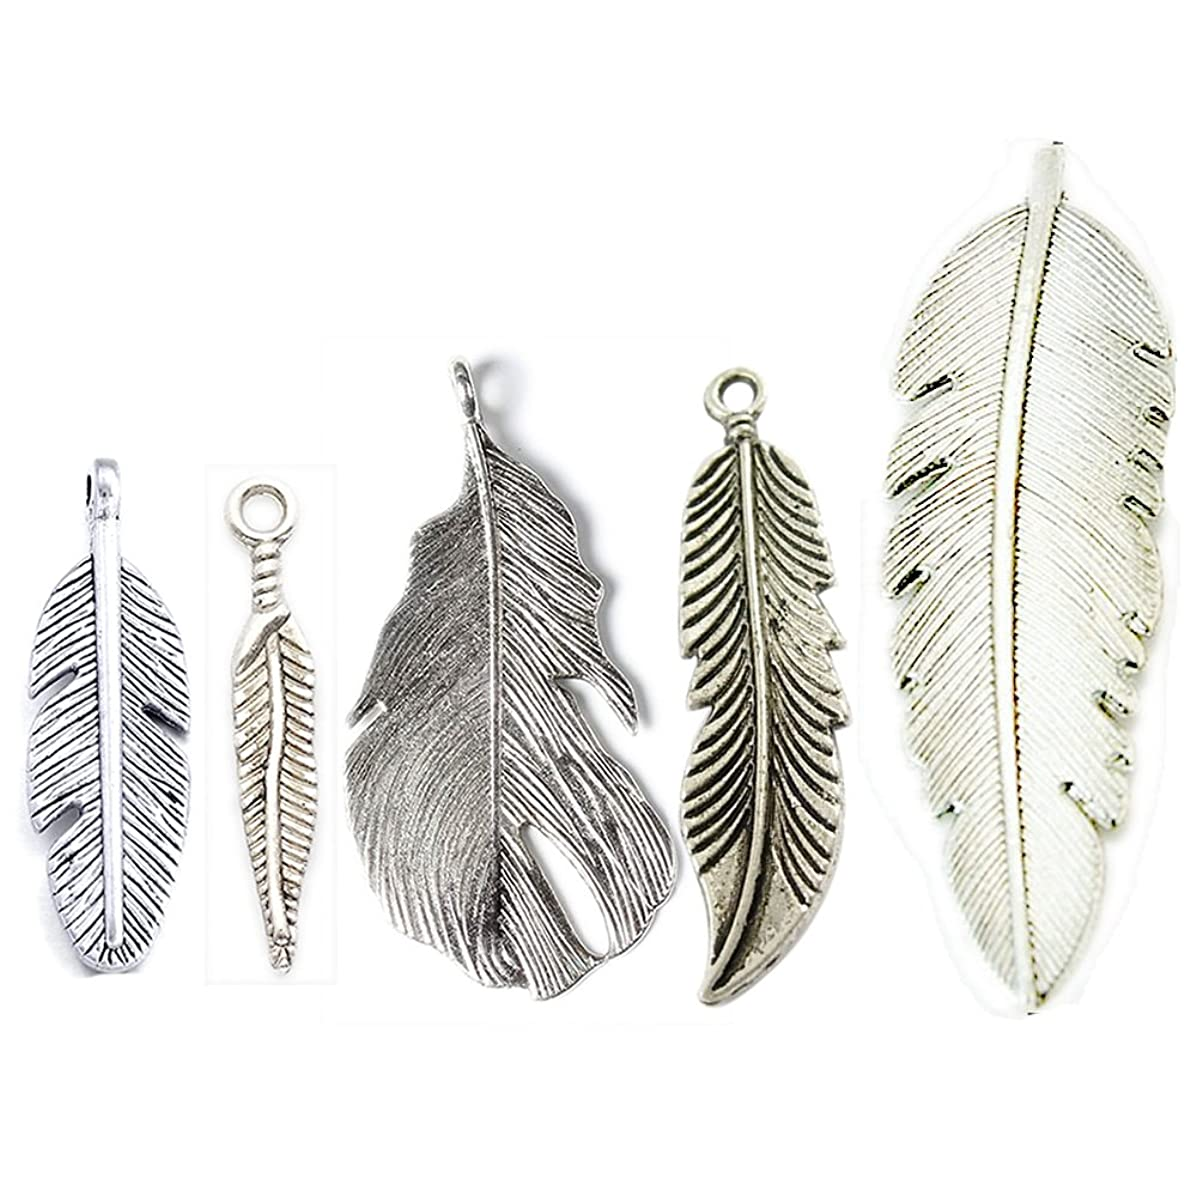 Beadthoven 10pcs Alloy Leaf Pendants Tibetan Style Charms for DIY Crafts Jewelry Making Accessories Alloy Necklaces Pendants Lead Free Mixed Shaped